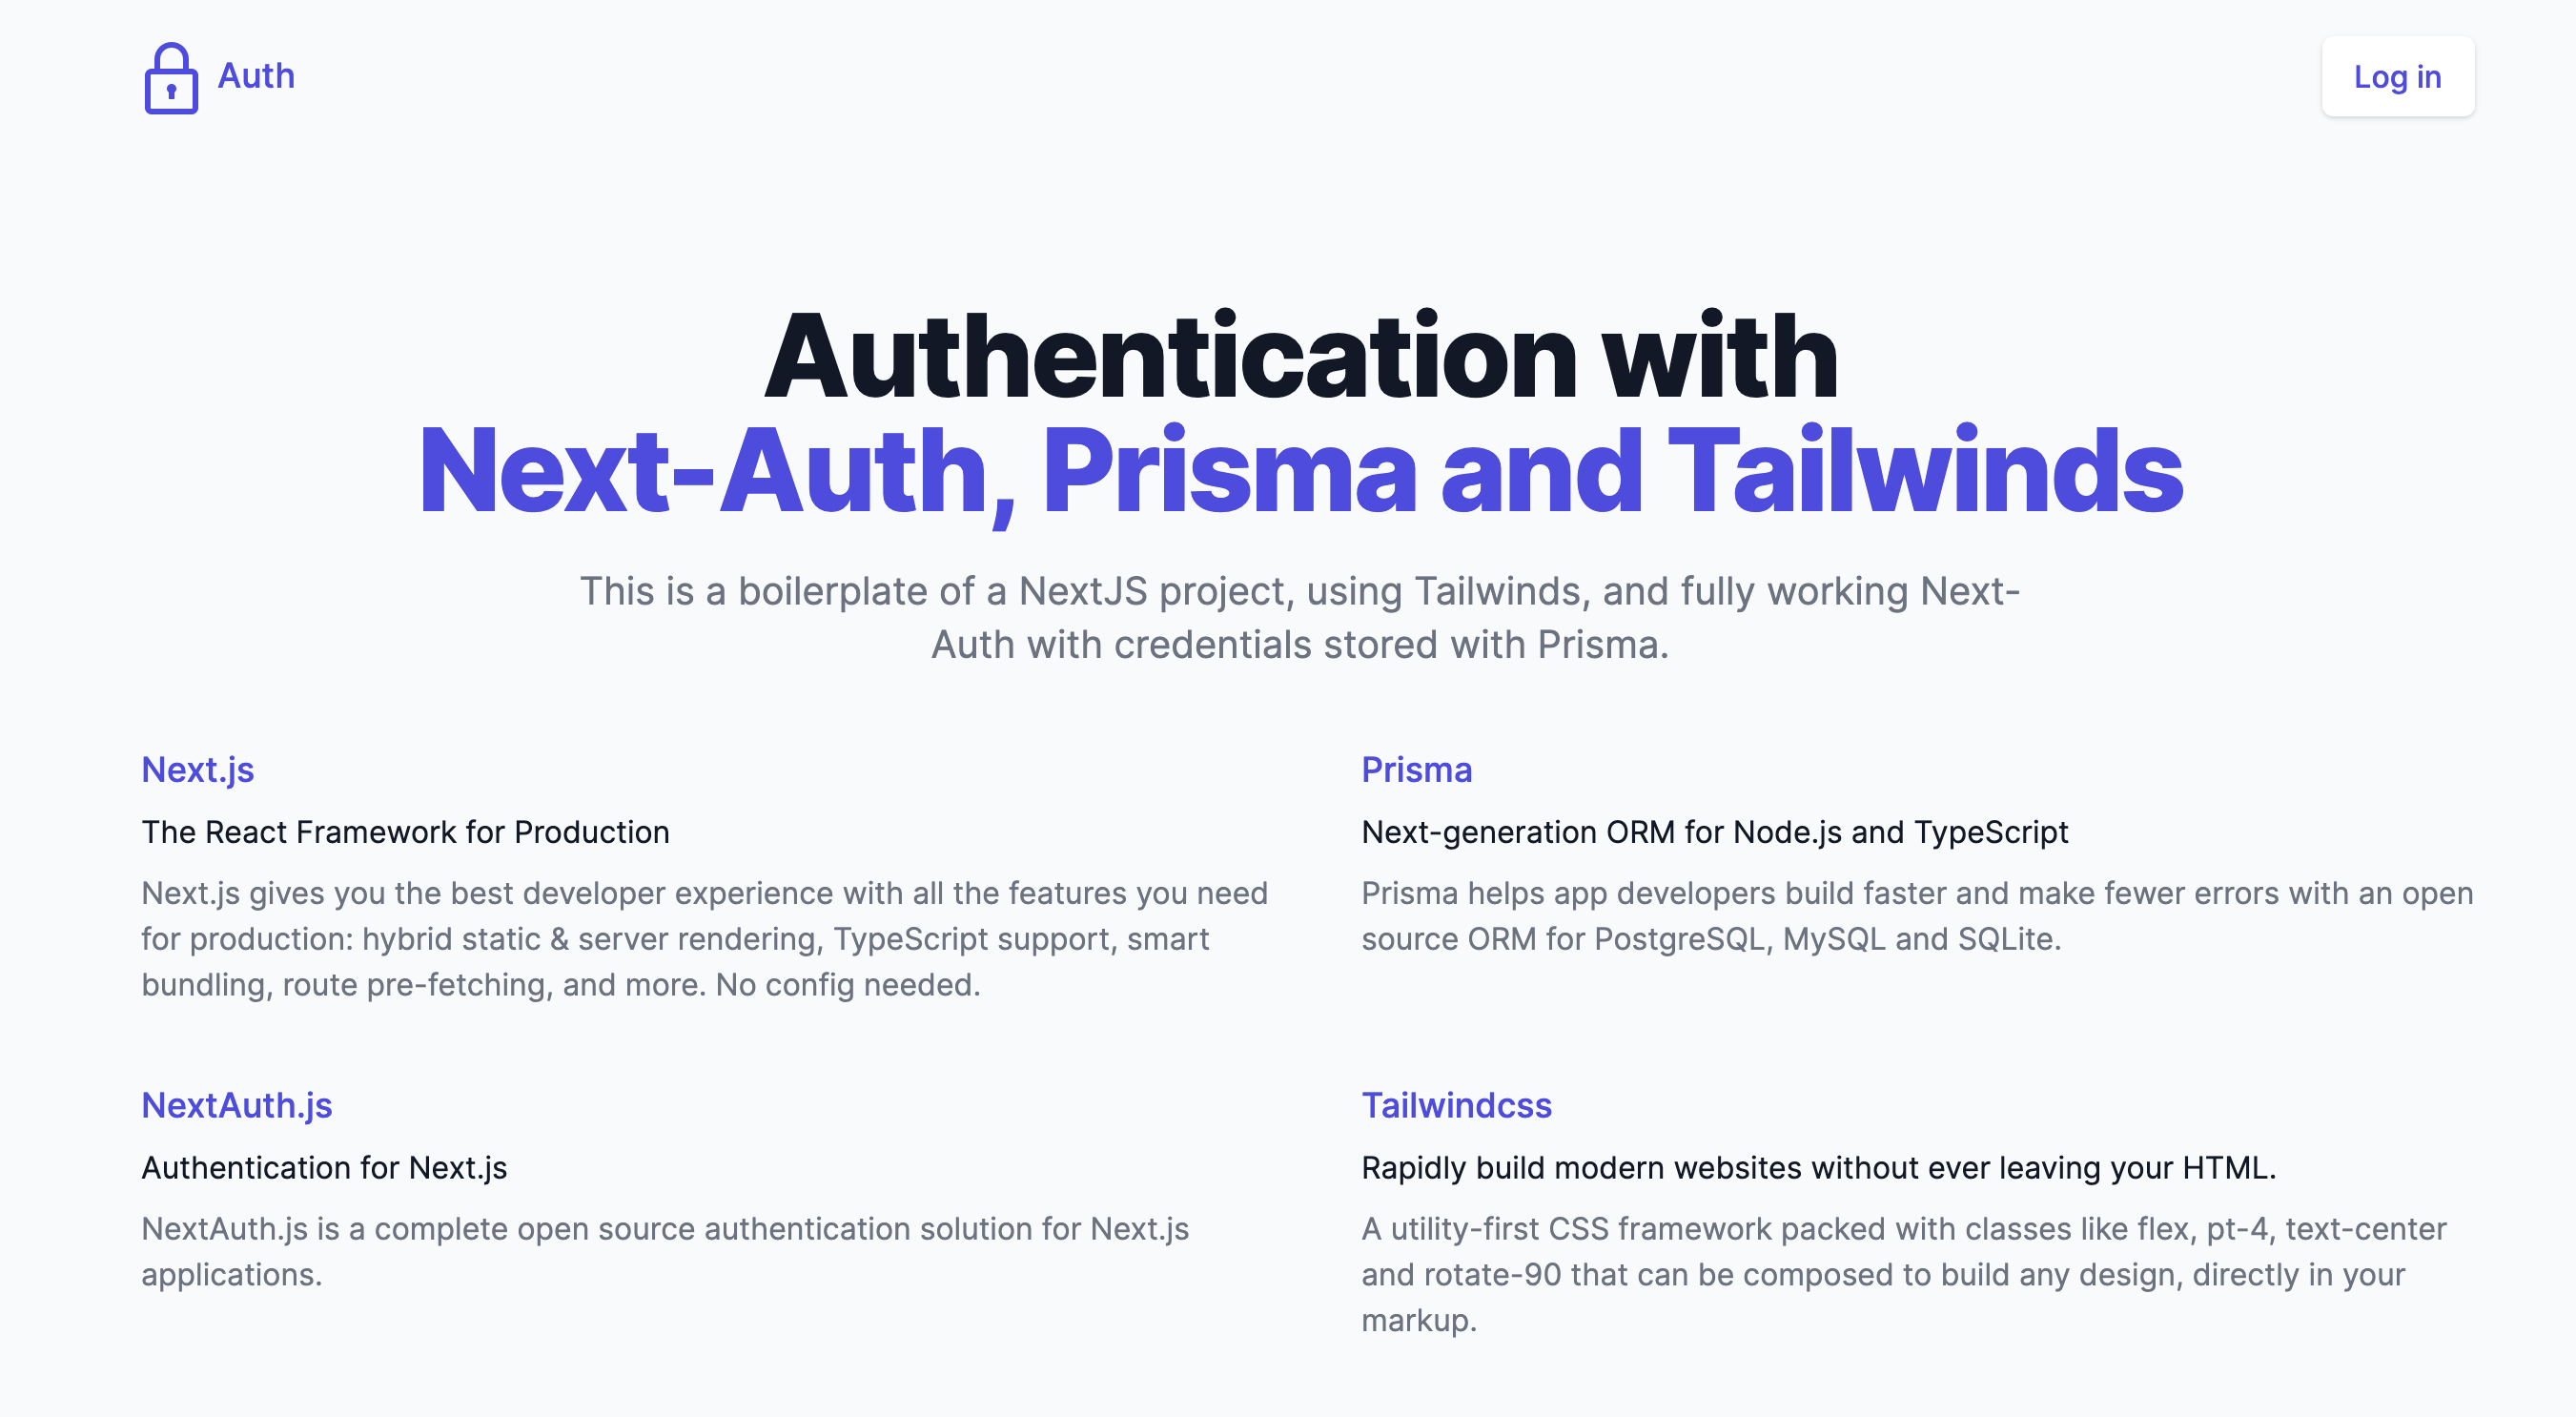 Full Auth with NextAuth, Prisma, and Tailwindcss